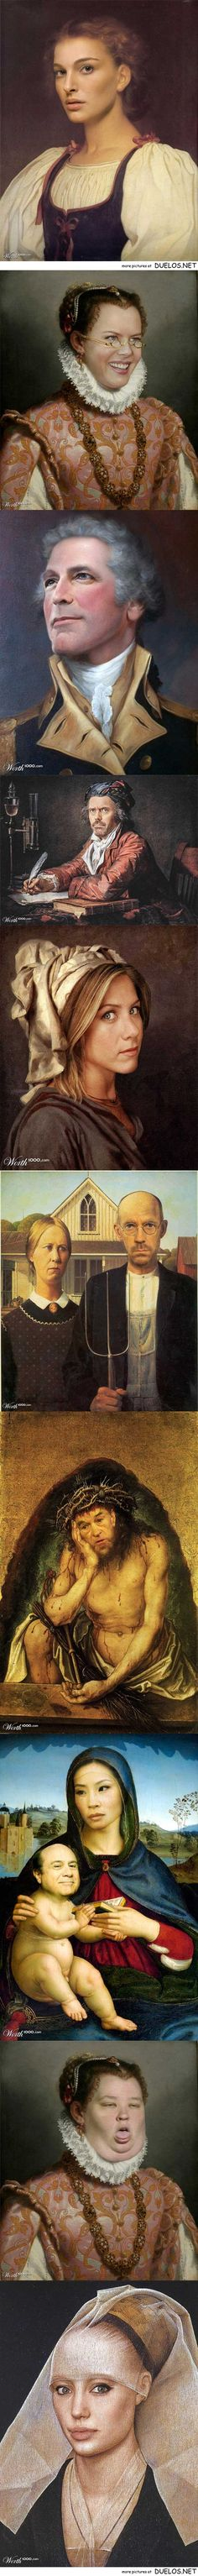 Classic paintings redone with celebrity faces - 2